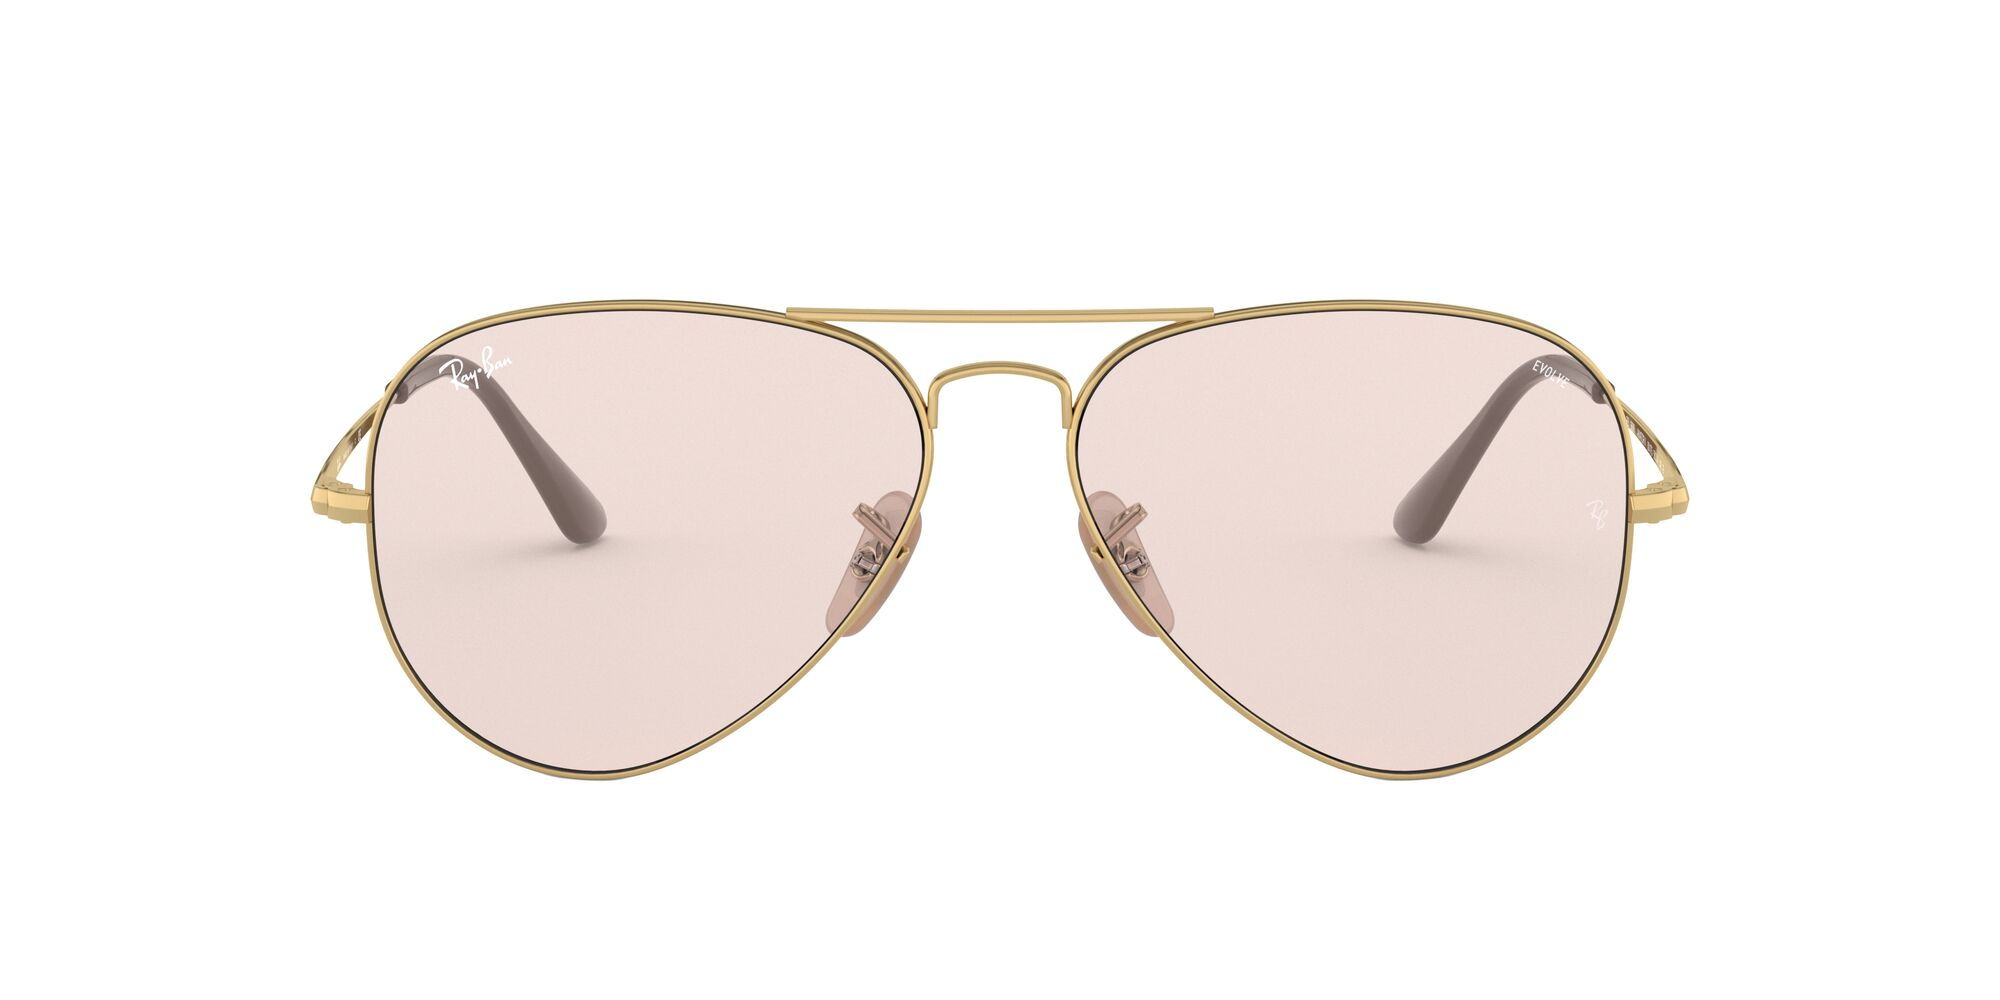 Front Ray-Ban Ray-Ban 0RB3689 001/T5 58/14 Goud/Roze